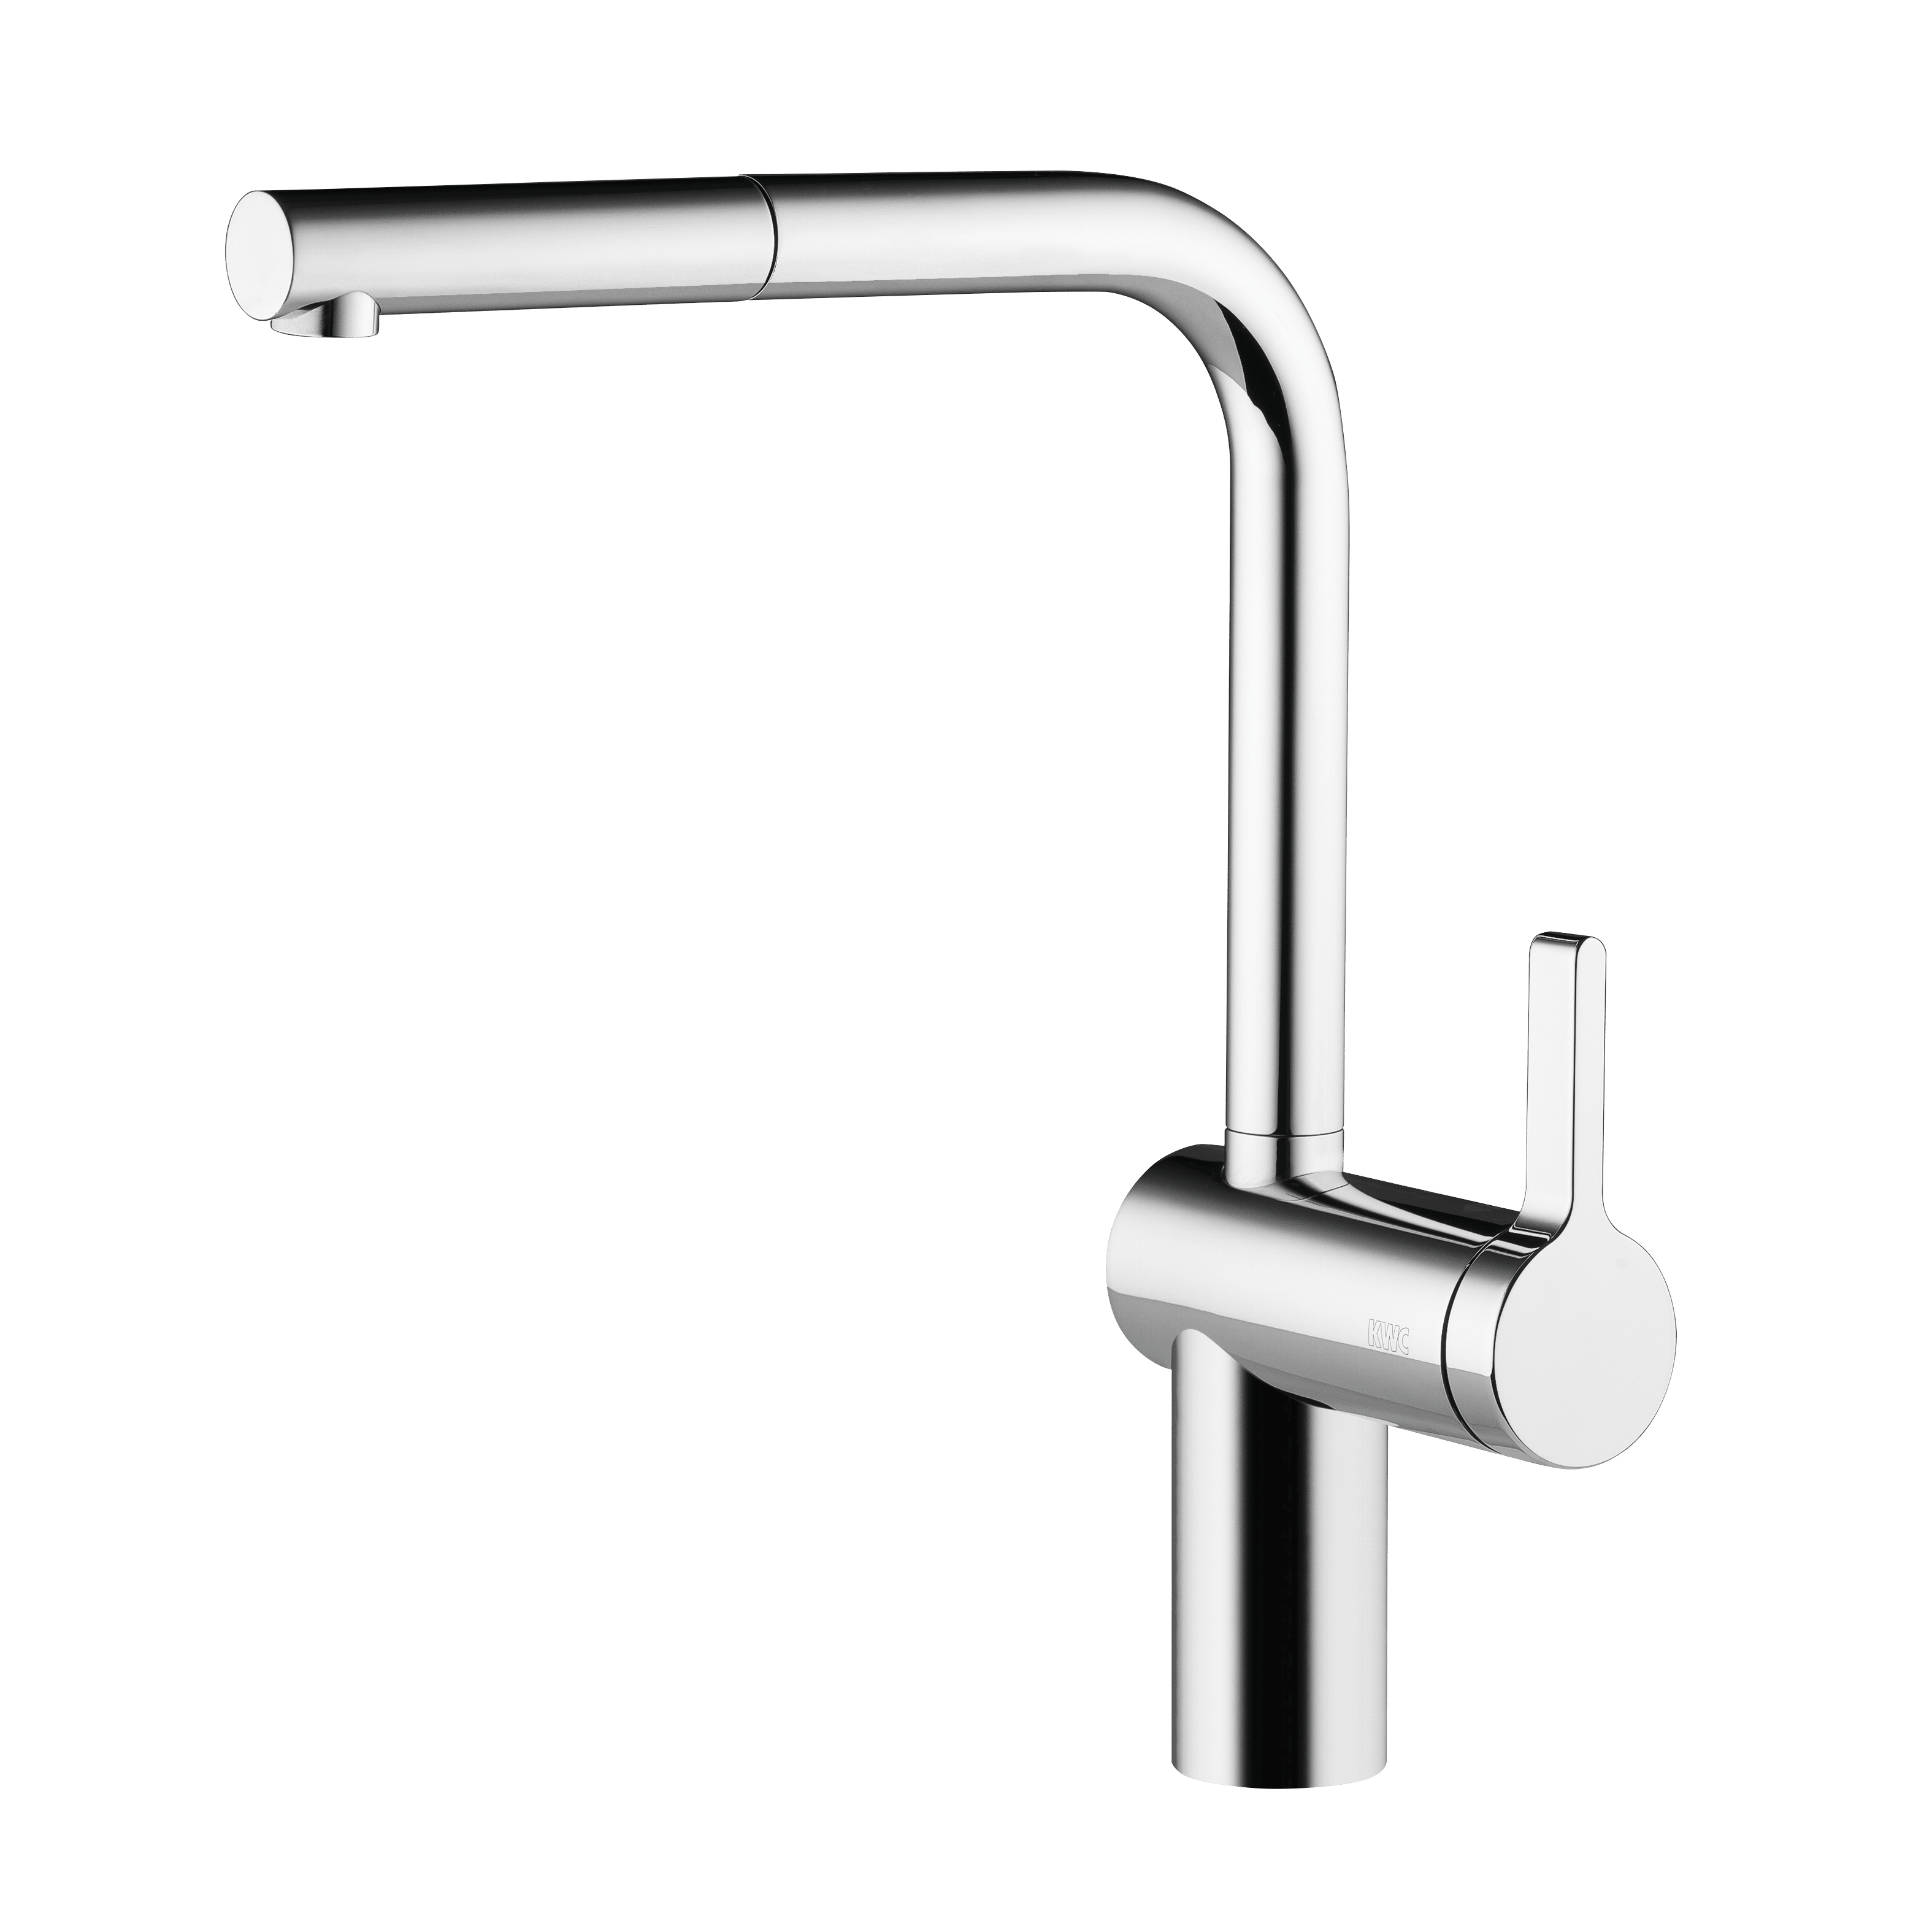 Kwc 10 231 103 Livello Single Lever Mixer With Pull out Spray